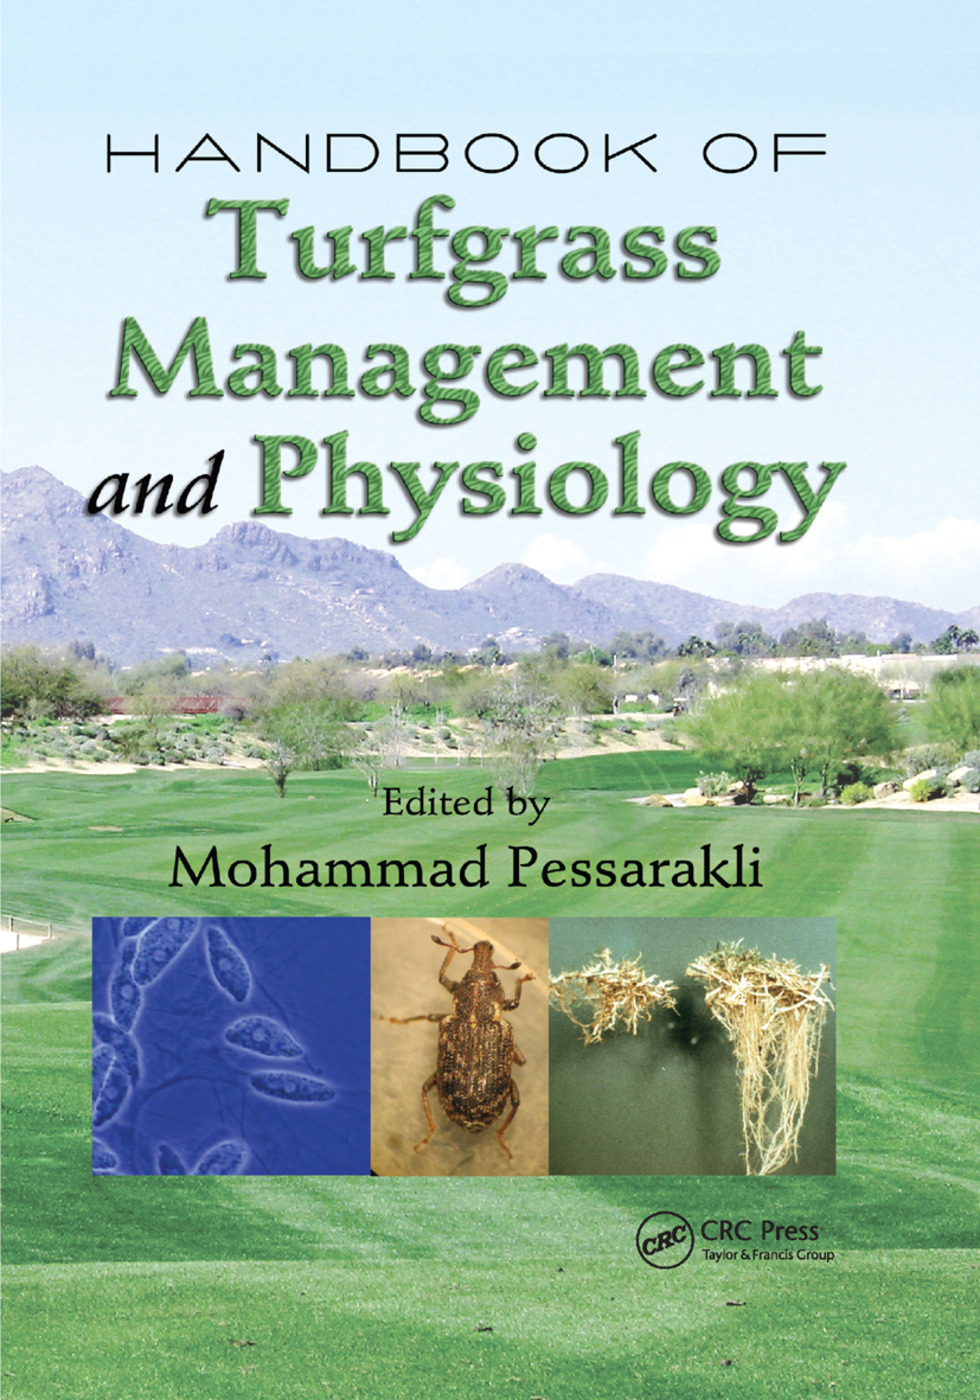 Handbook of Turfgrass Management and Physiology: 1st Edition (Paperback) book cover